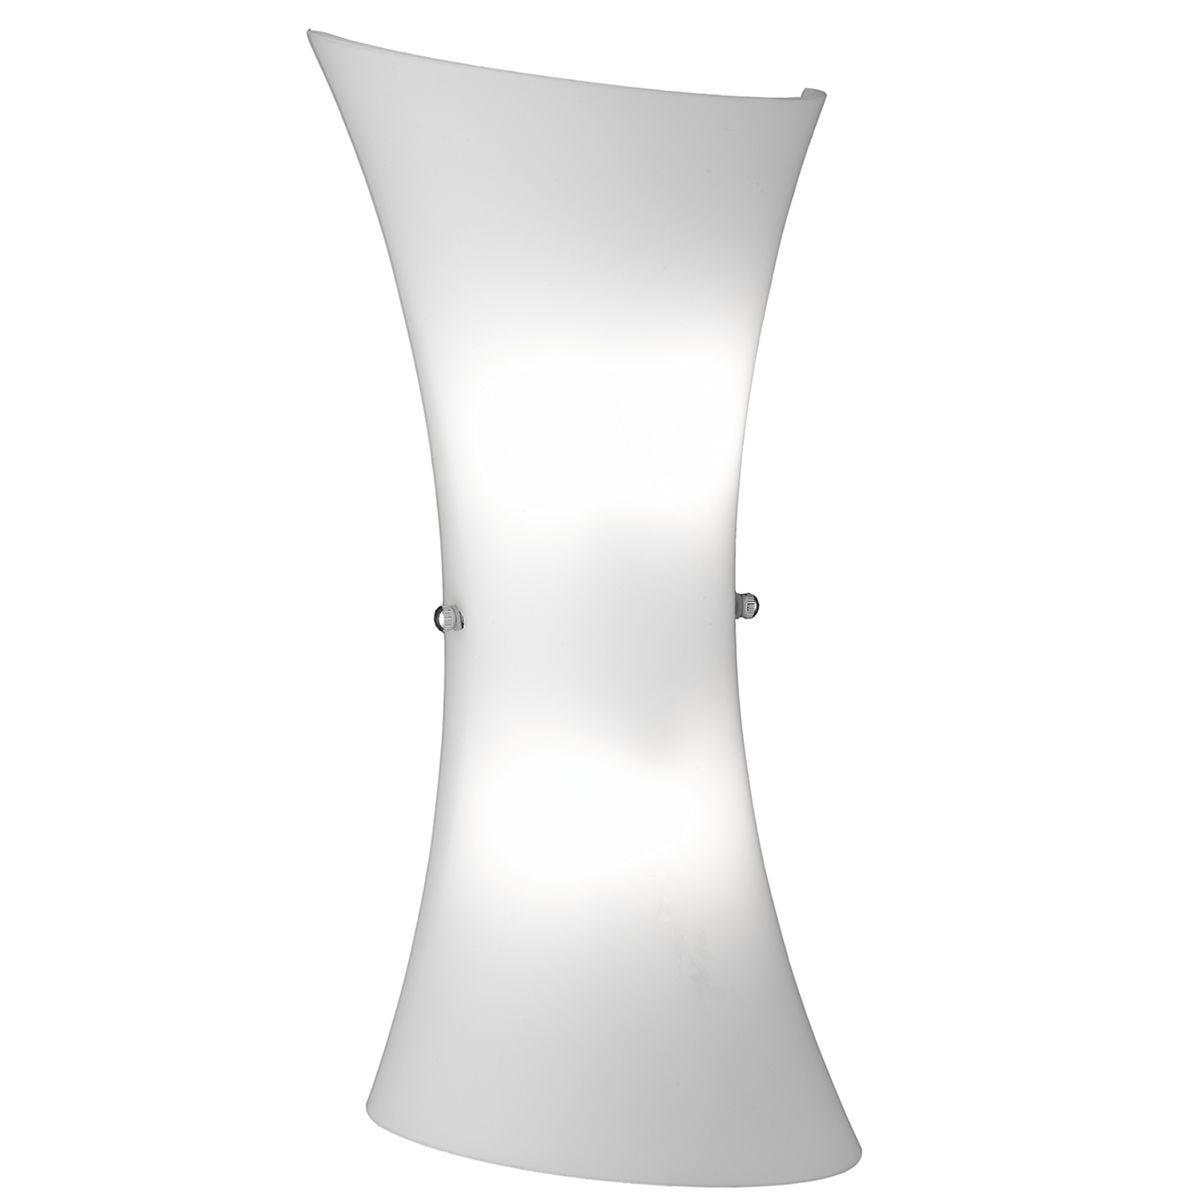 Wofi Zibo Wall Lamp -  White